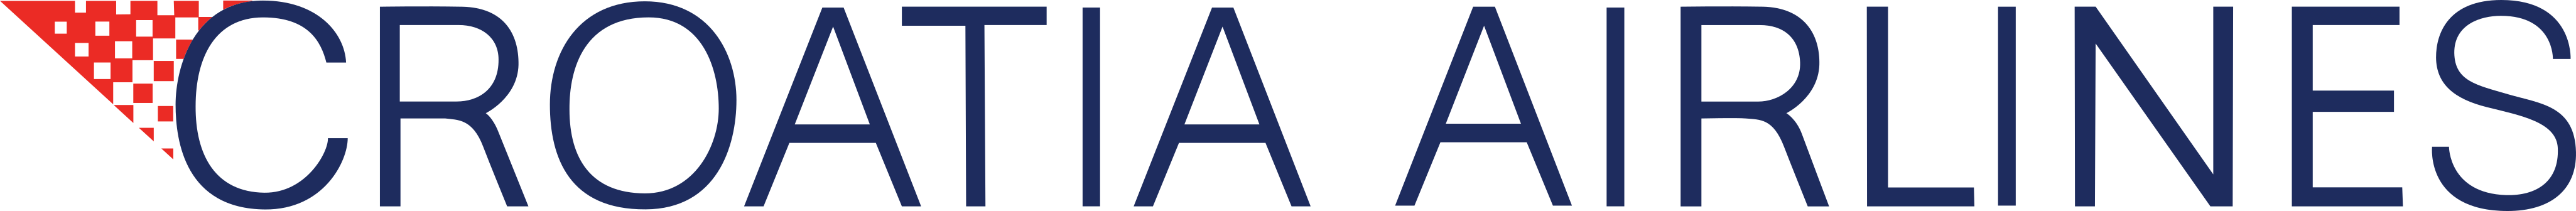 Croatia Airlines Logo.